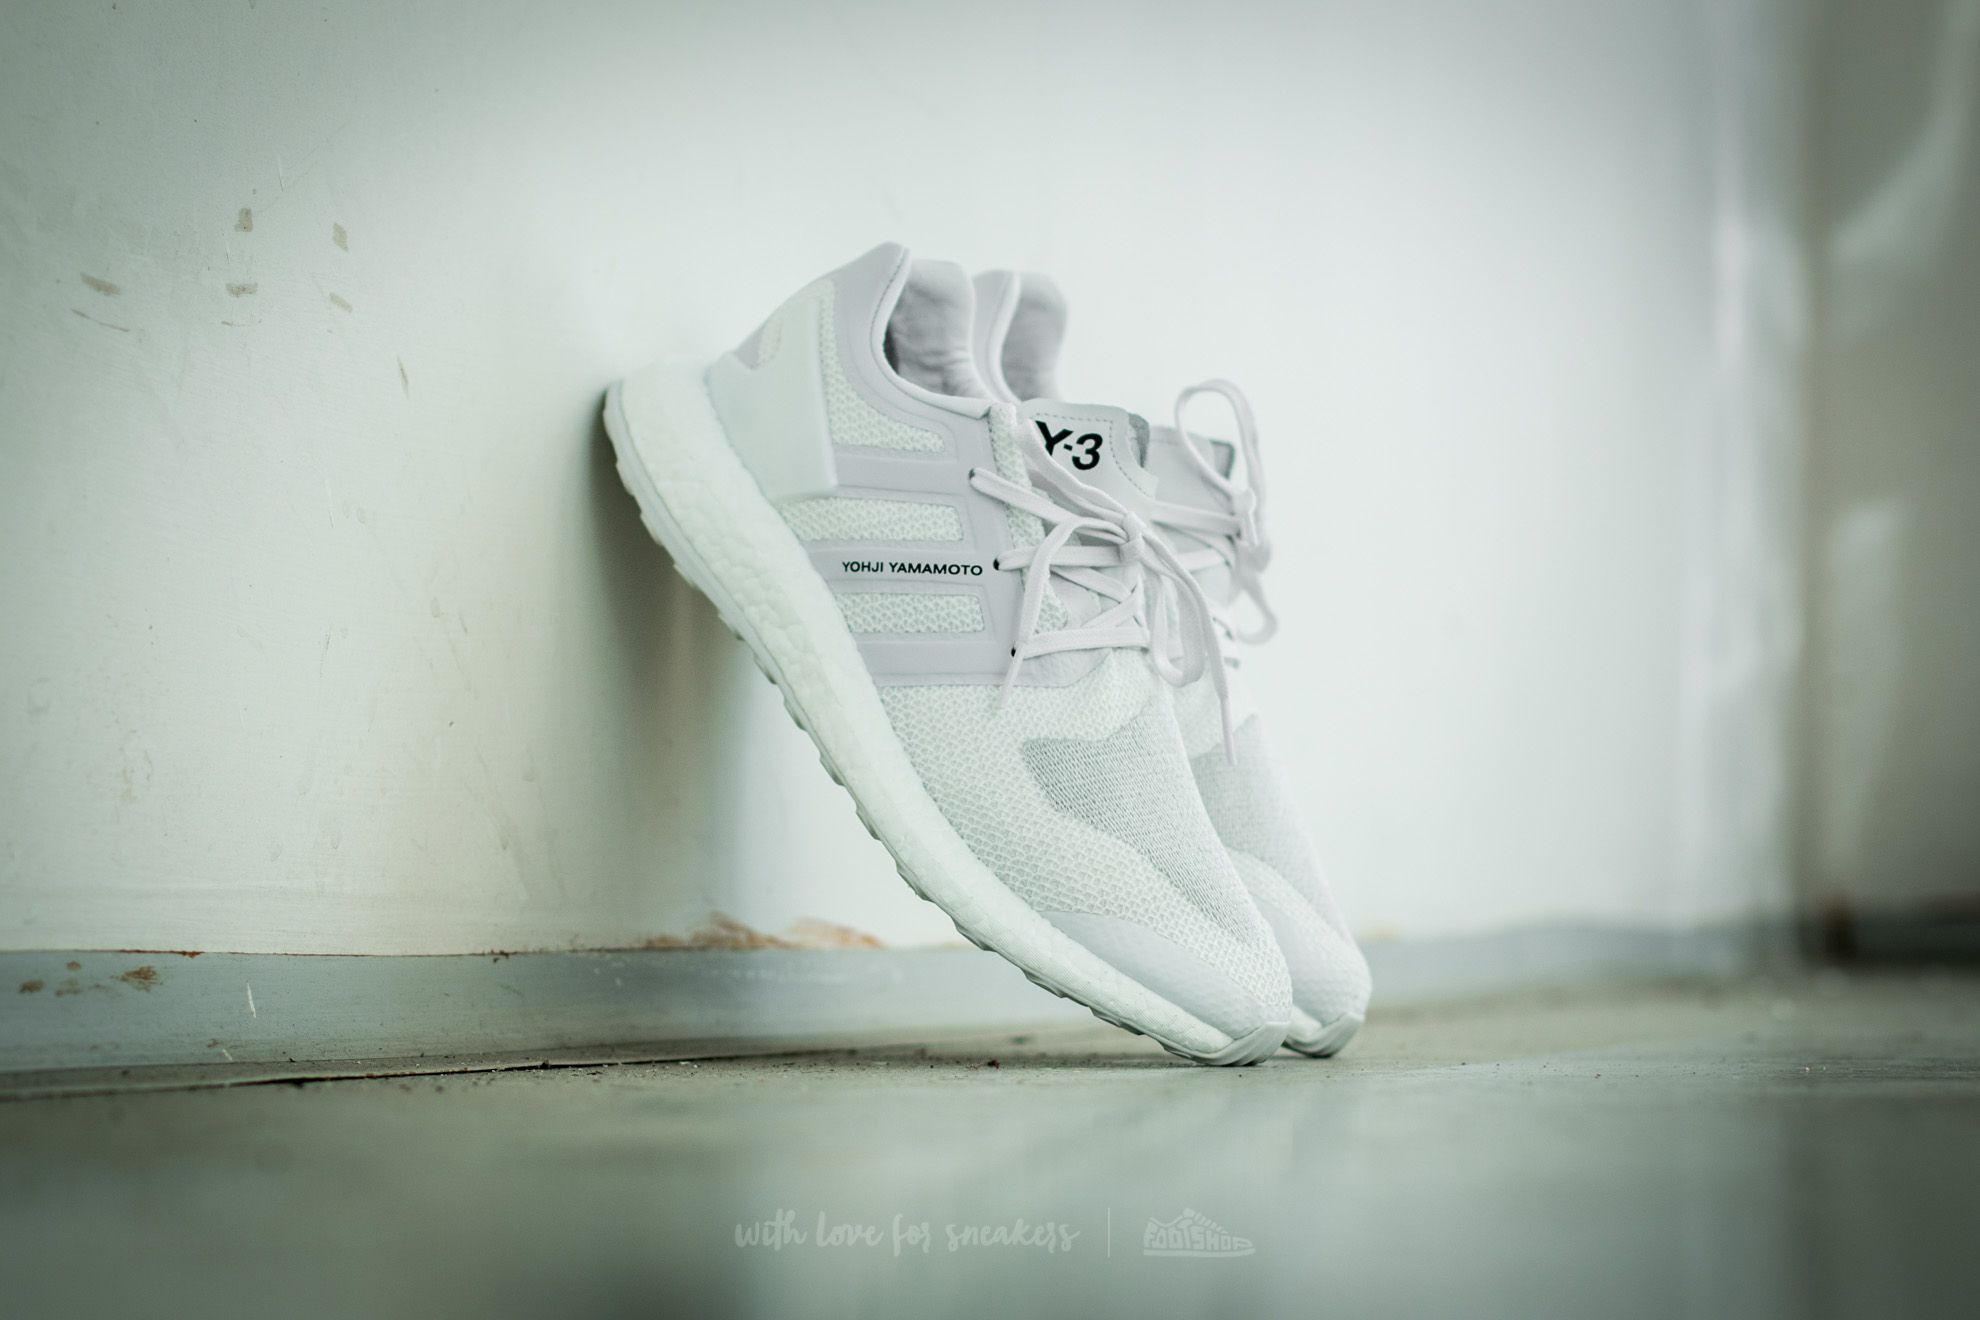 967d2426b adidas Y-3 Pure Boost Crystal White  Footwear White  Crystal White